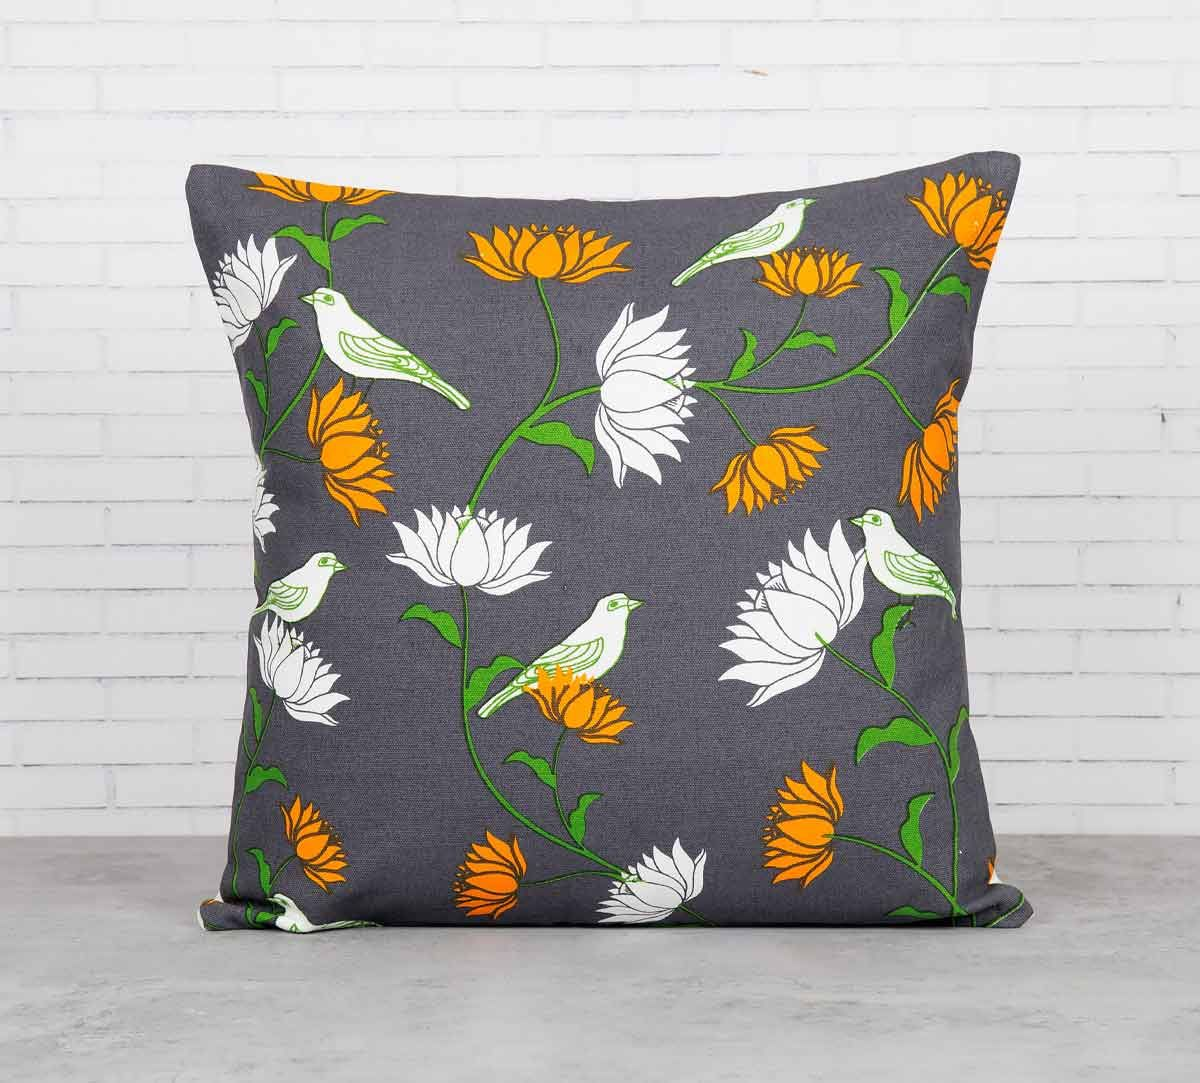 Buy the best designer cushions under Rs 499 on India Circus